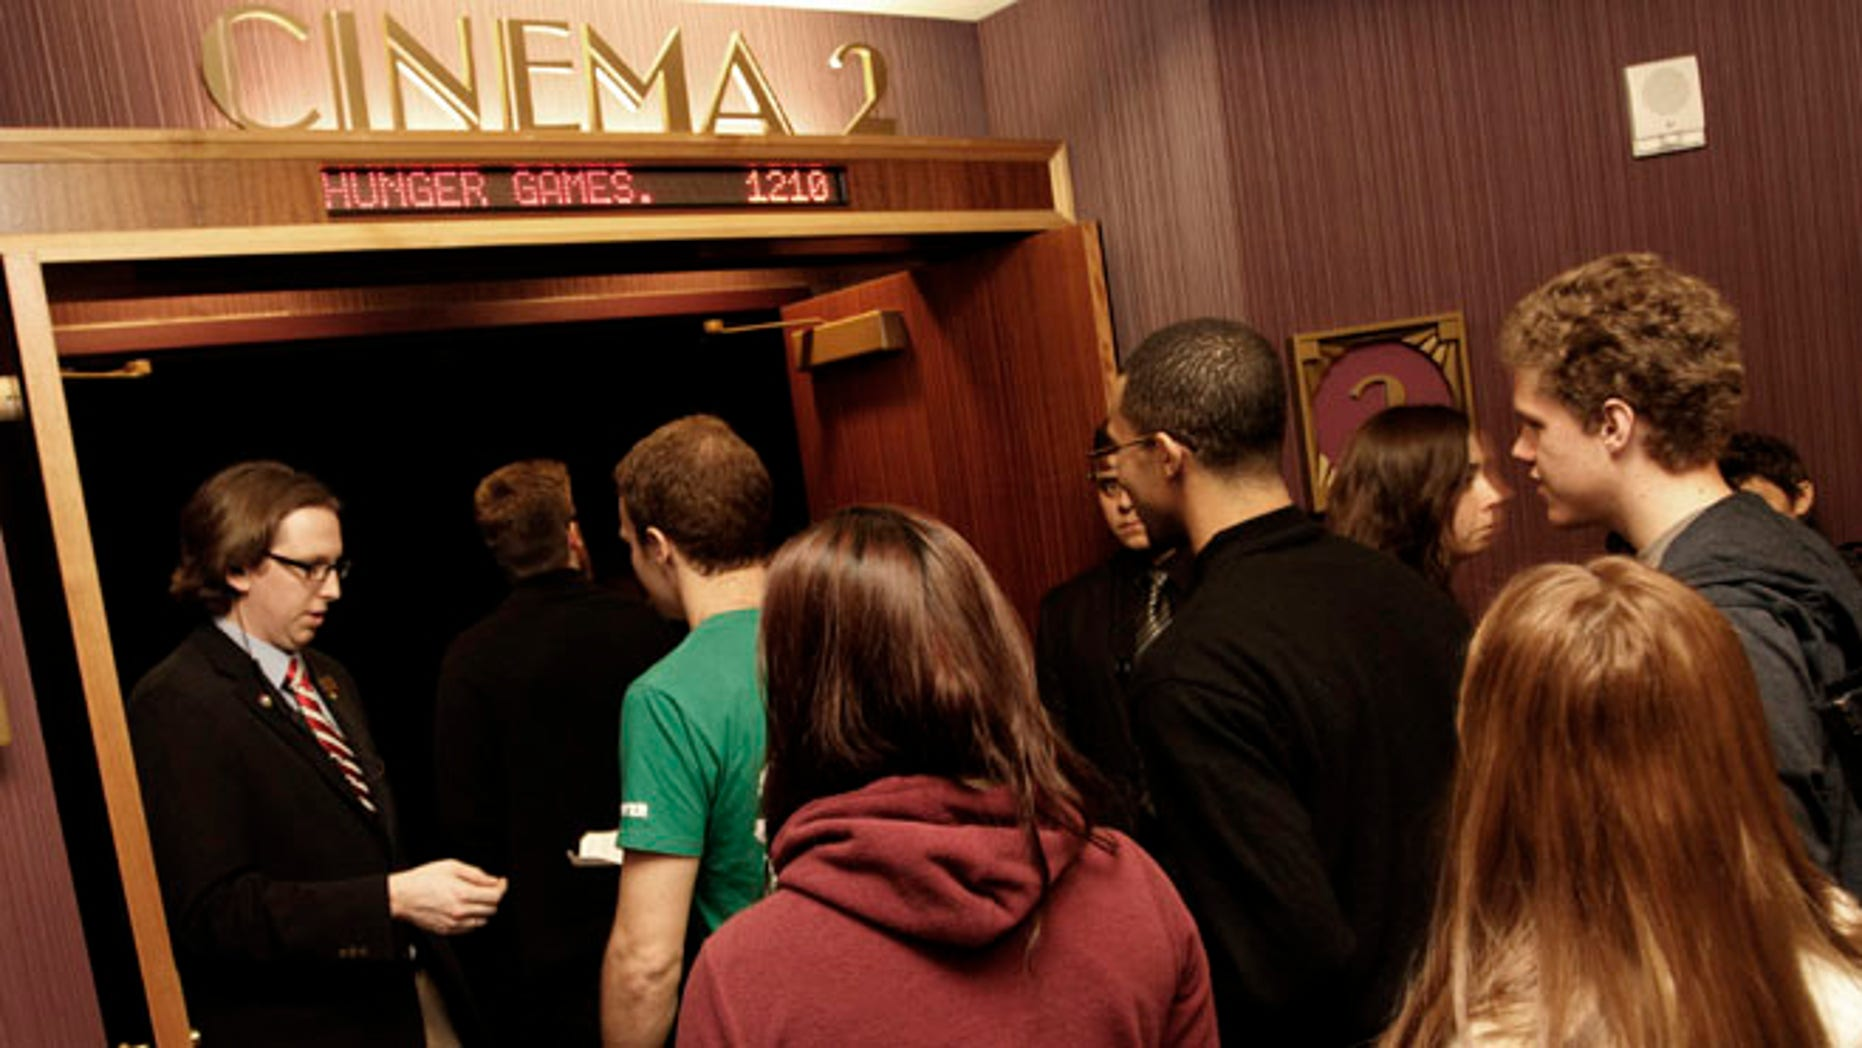 Workers for Regal Entertainment Group, like the one seen here collecting tickets from movie-goers, have had their work weeks shortened in a new company-wide mandate. Internal documents obtained by FoxNews.com show that the cuts were enacted in response to the Affordable Care Act.